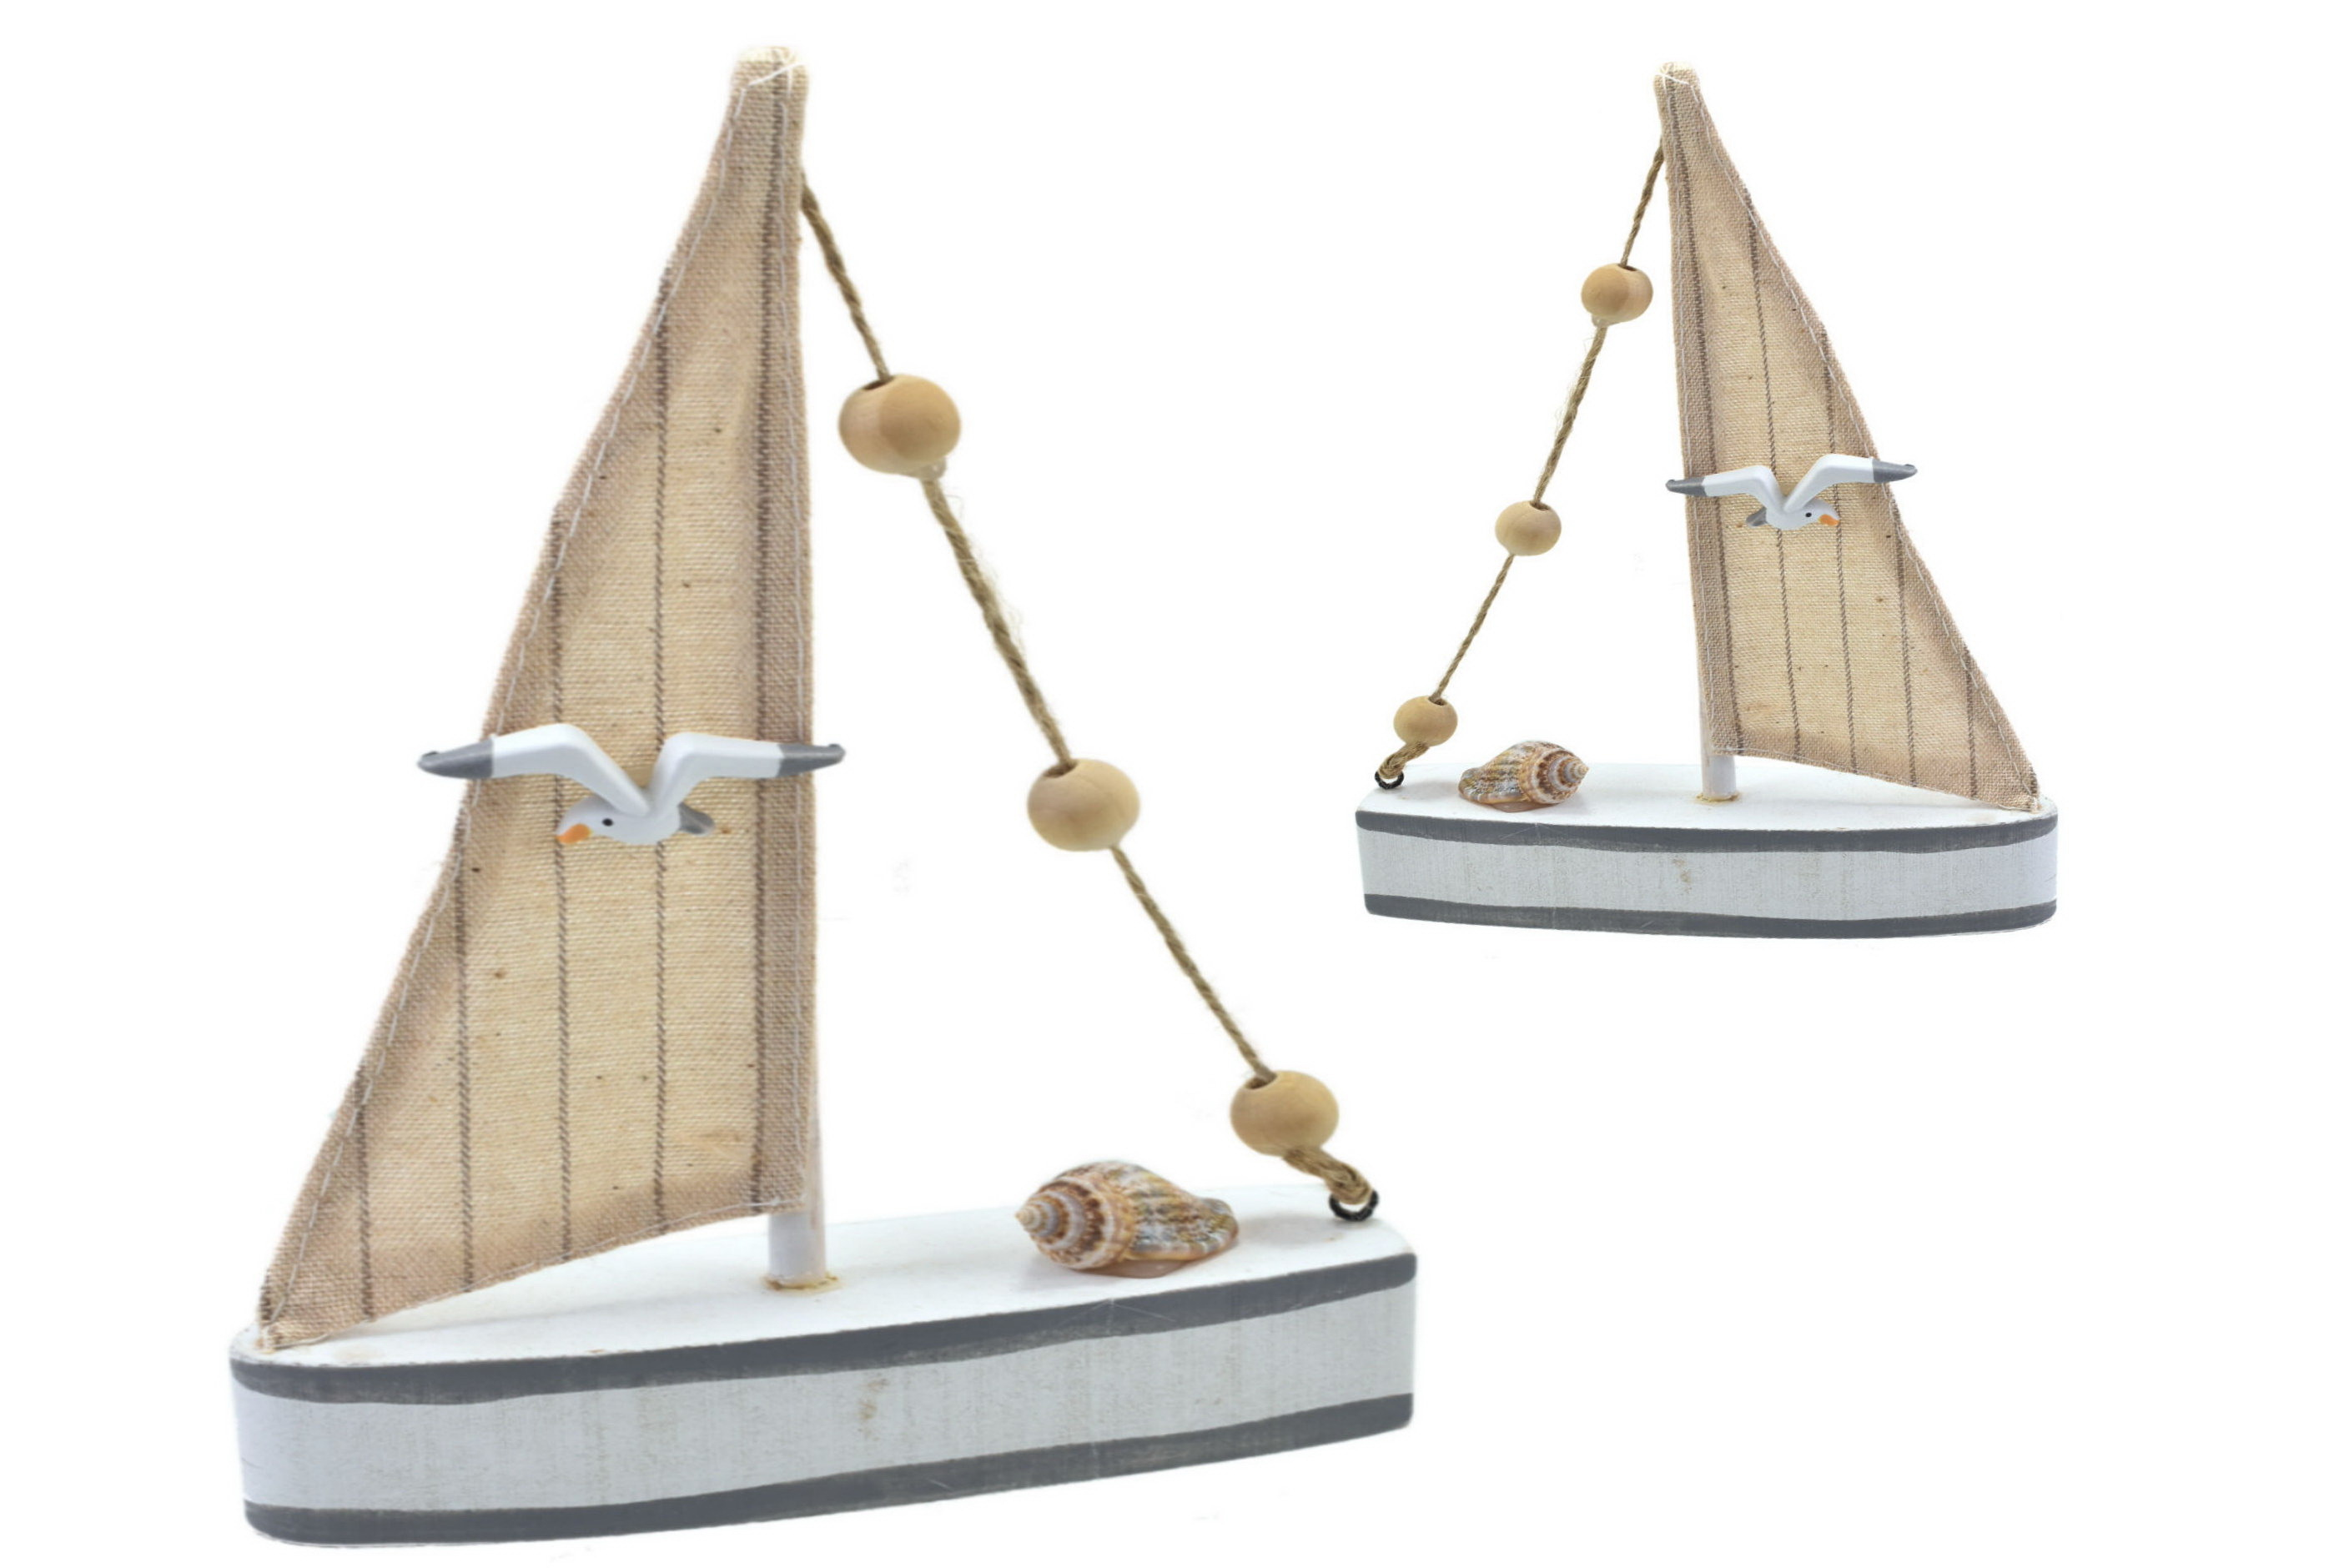 12x17cm Wooden Boat With Fabric Sail